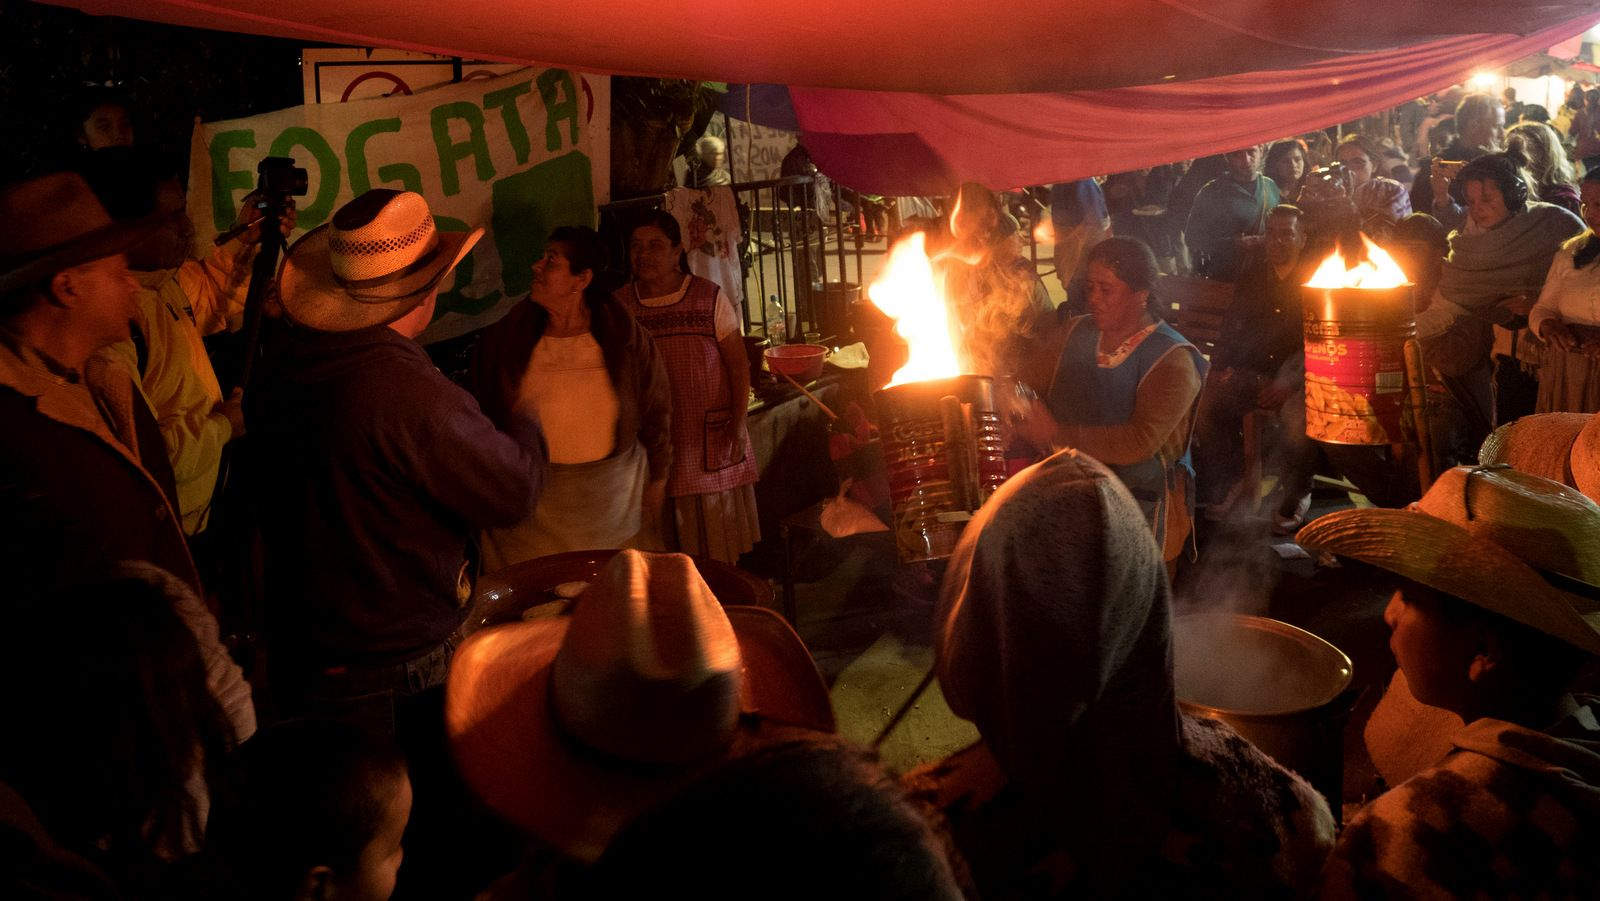 A small crowd visits one of the local bonfires, a part of events commemorating the seventh anniversary of the community uprising against illegal loggers and organized crime in Cheran, Michoacan, April 15, 2018. (Photo: José Luis Granados Ceja)